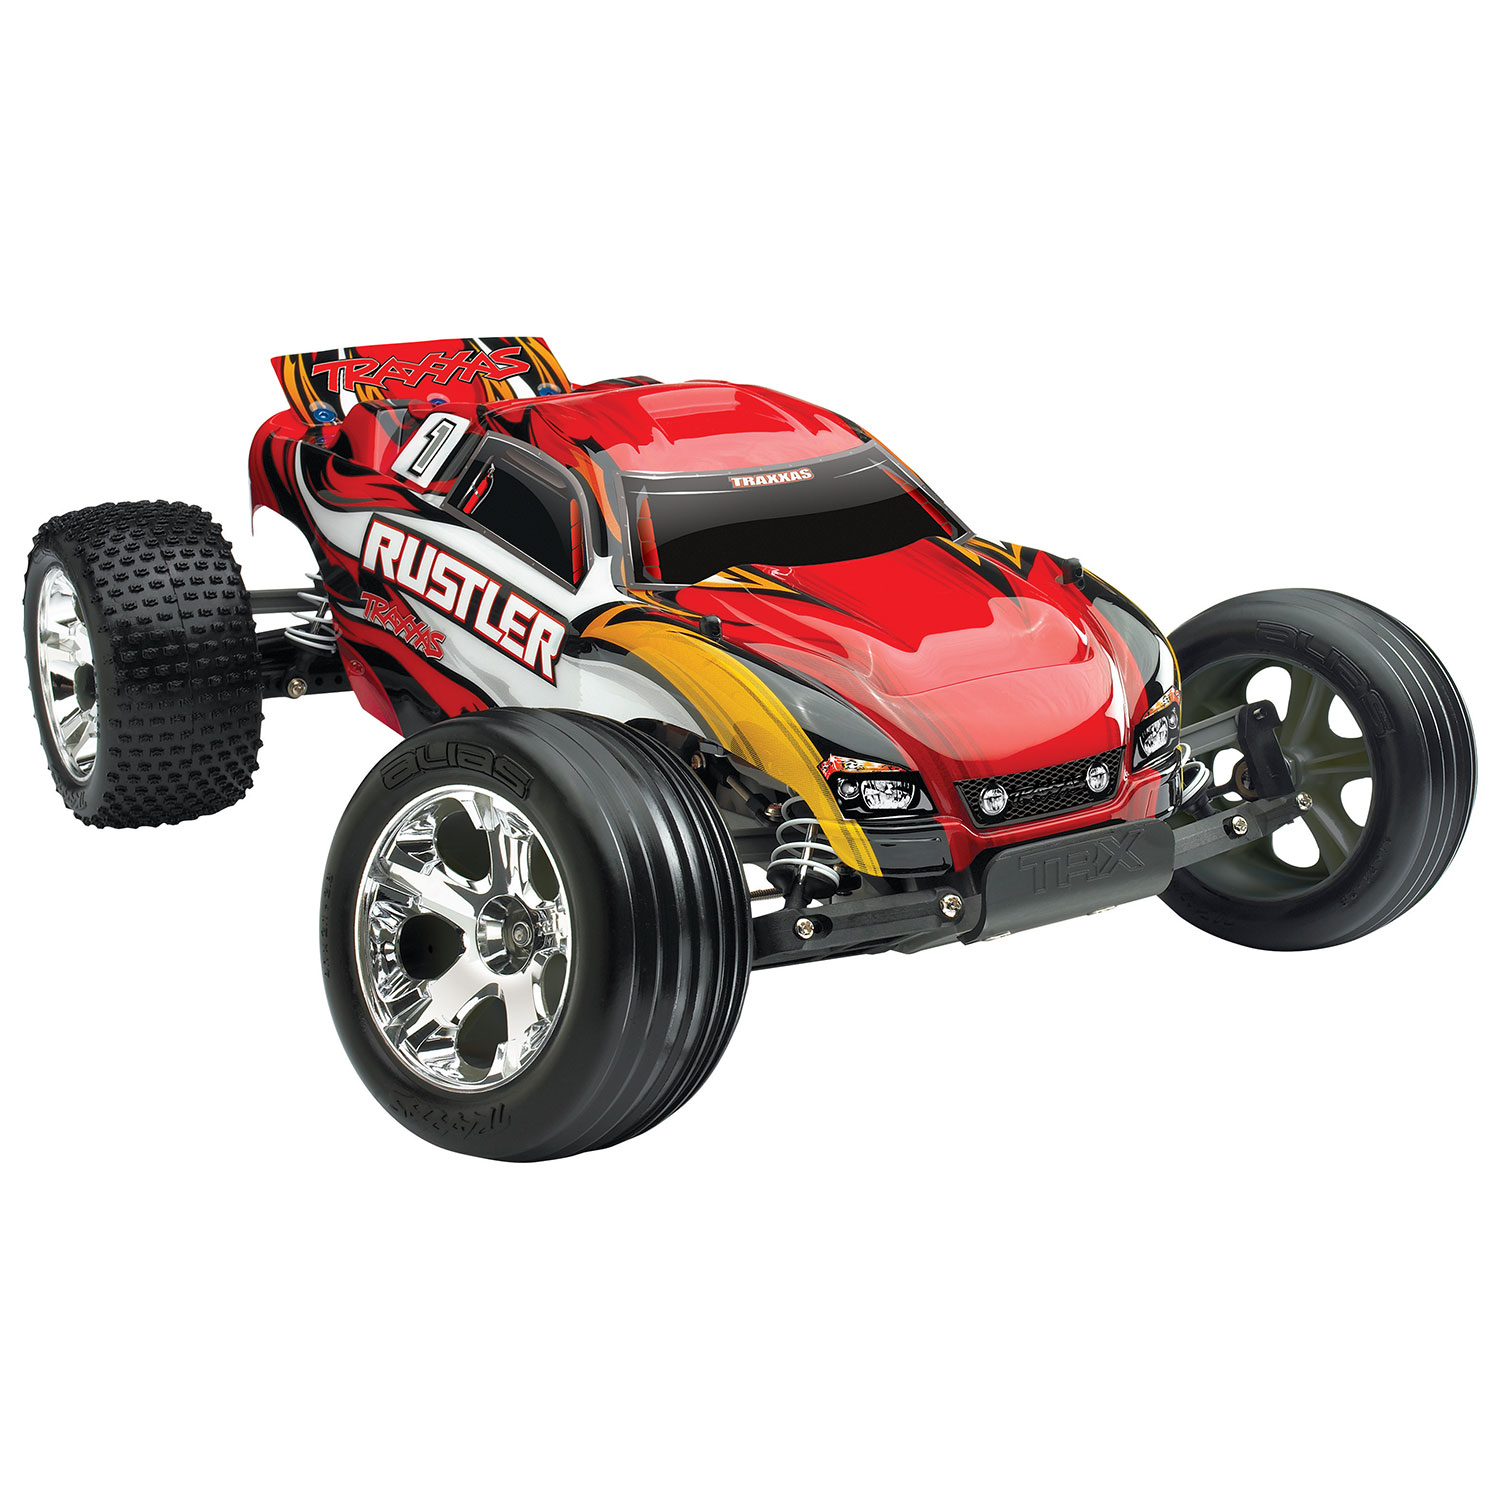 The first Traxxas RC vehicle I want to discuss is the Traxxas Rustler 2WD 1 10 Scale RC Truck This truck which is kind of a cross between a monster truck